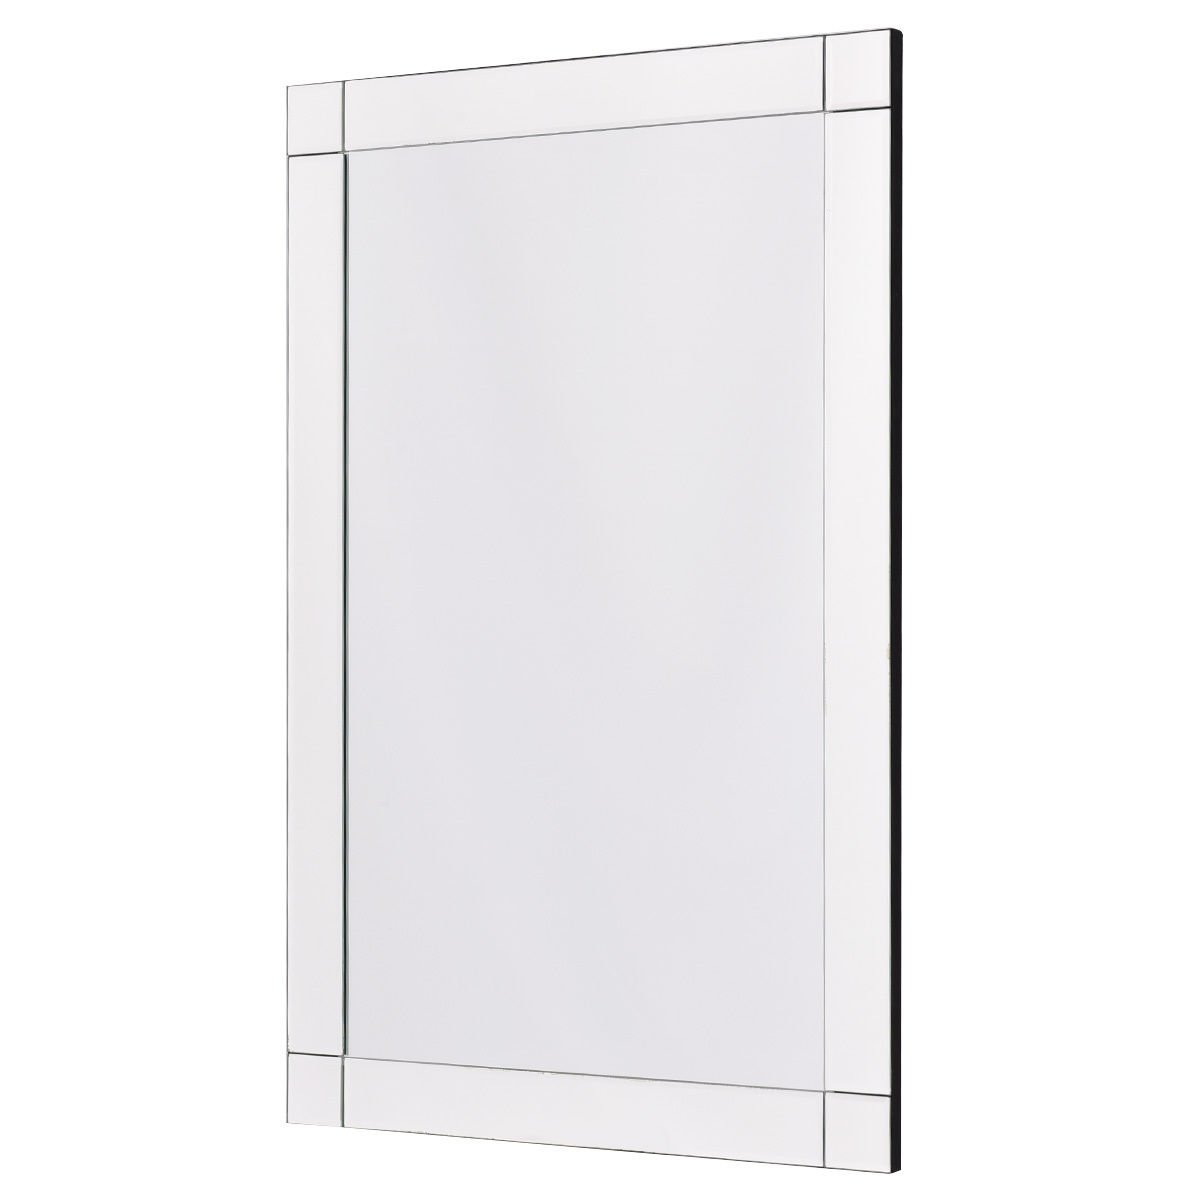 TANGKULA Wall Mirror Vanity Mirror Home Bathroom Office Bedroom Frameless Hanged Rectangle Make Up Mirror (Wall Mounted Rectangular)